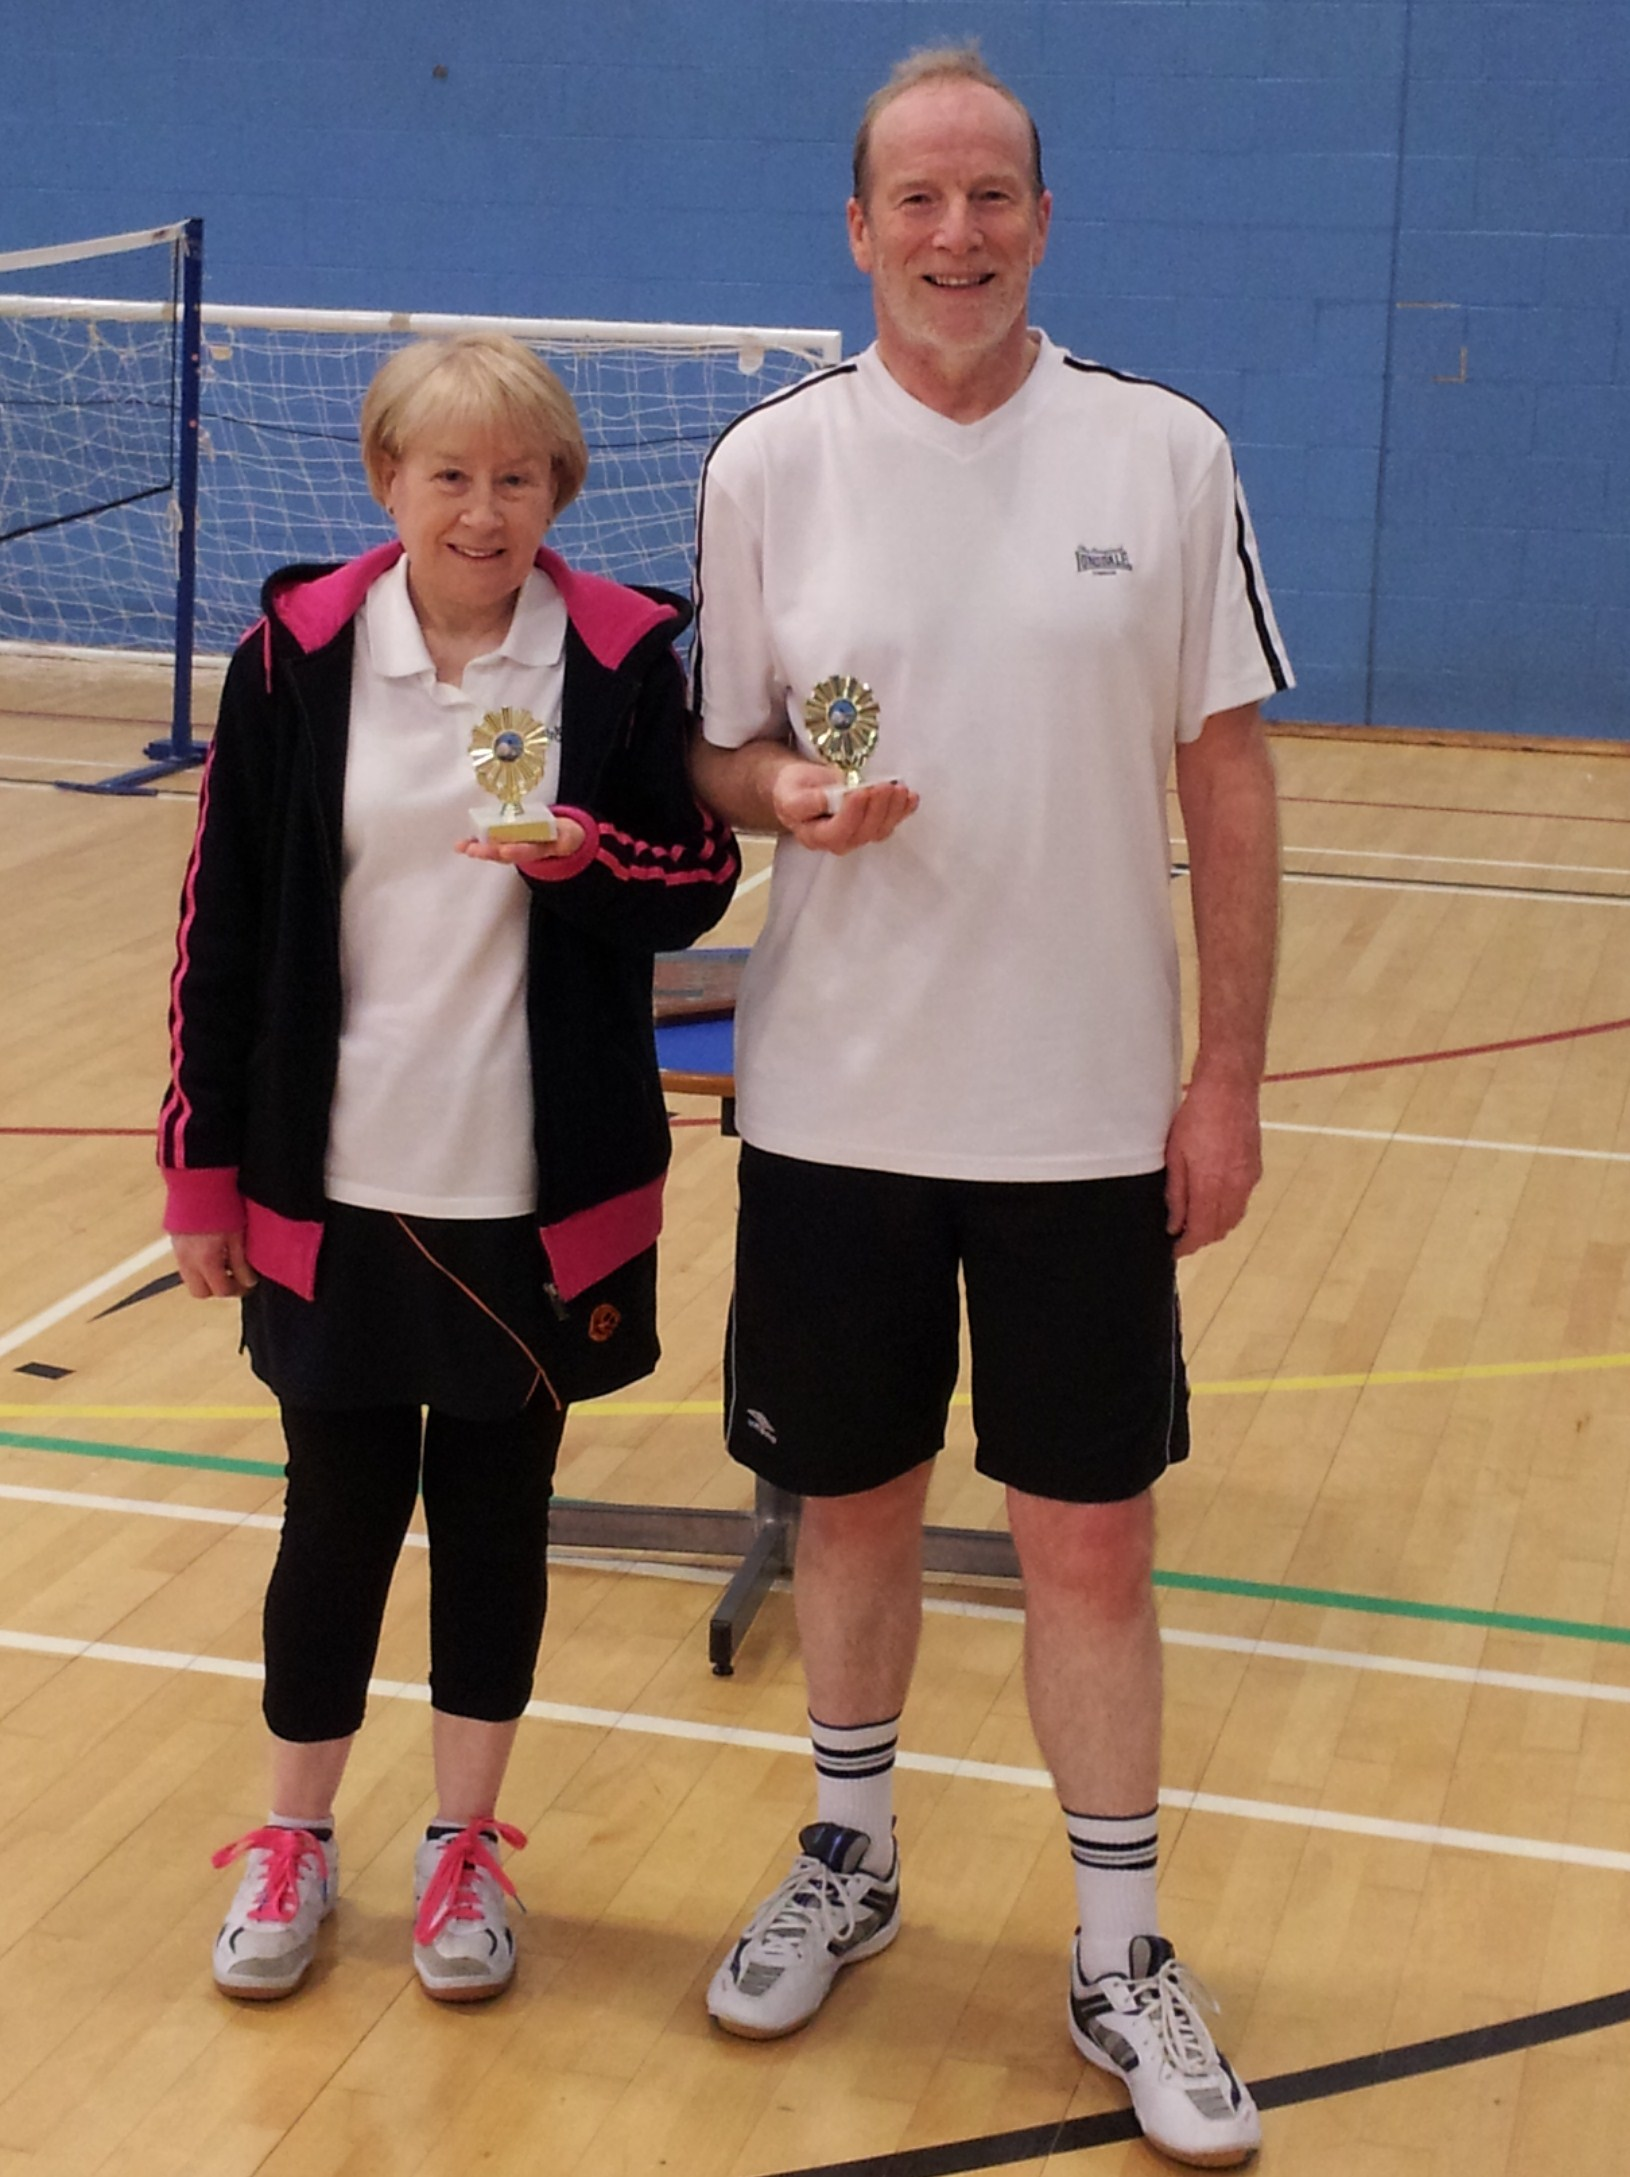 Handicap Tournament Veterans Mixed Doubles Runners Up